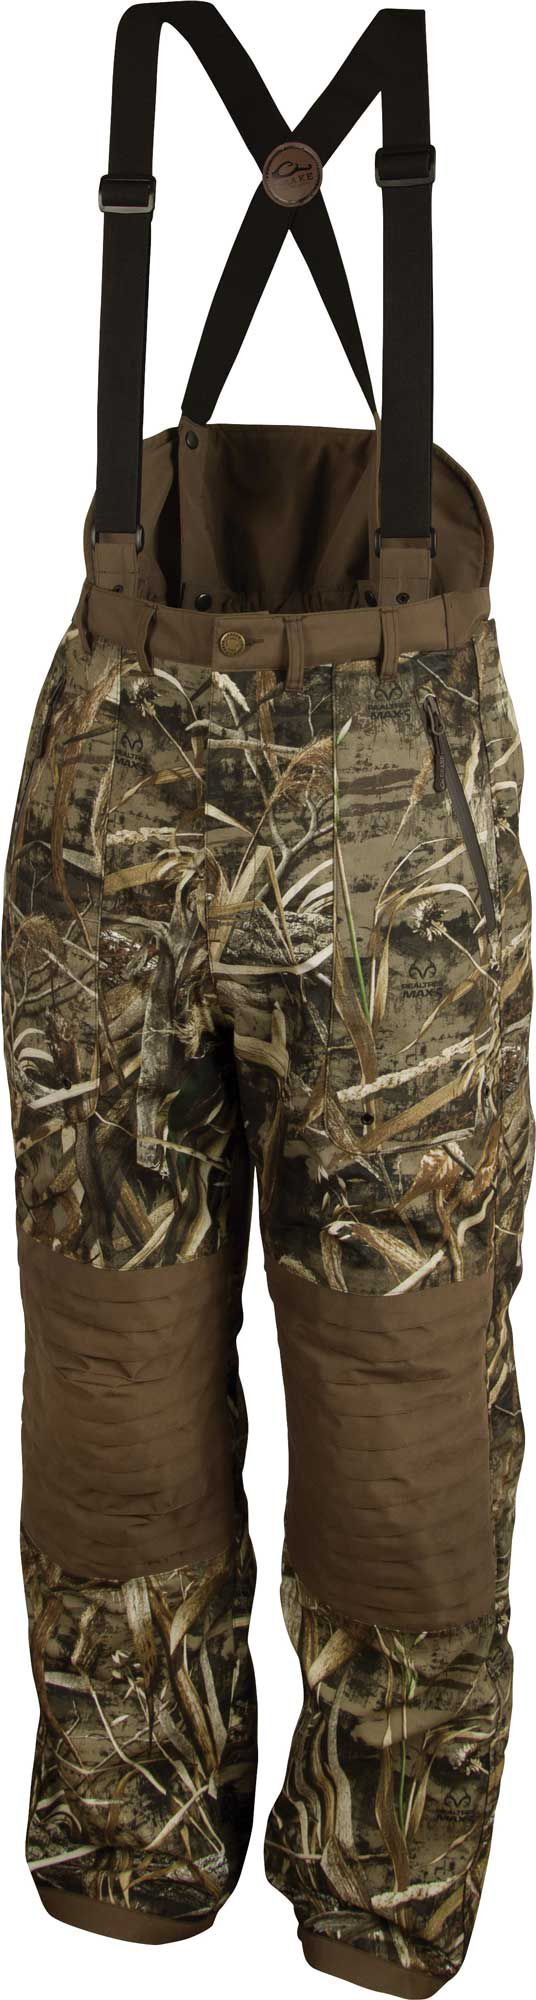 Drake Waterfowl Men's Guardian Elite High-Back Insulated Hunting Pants, Size: Small, Multi